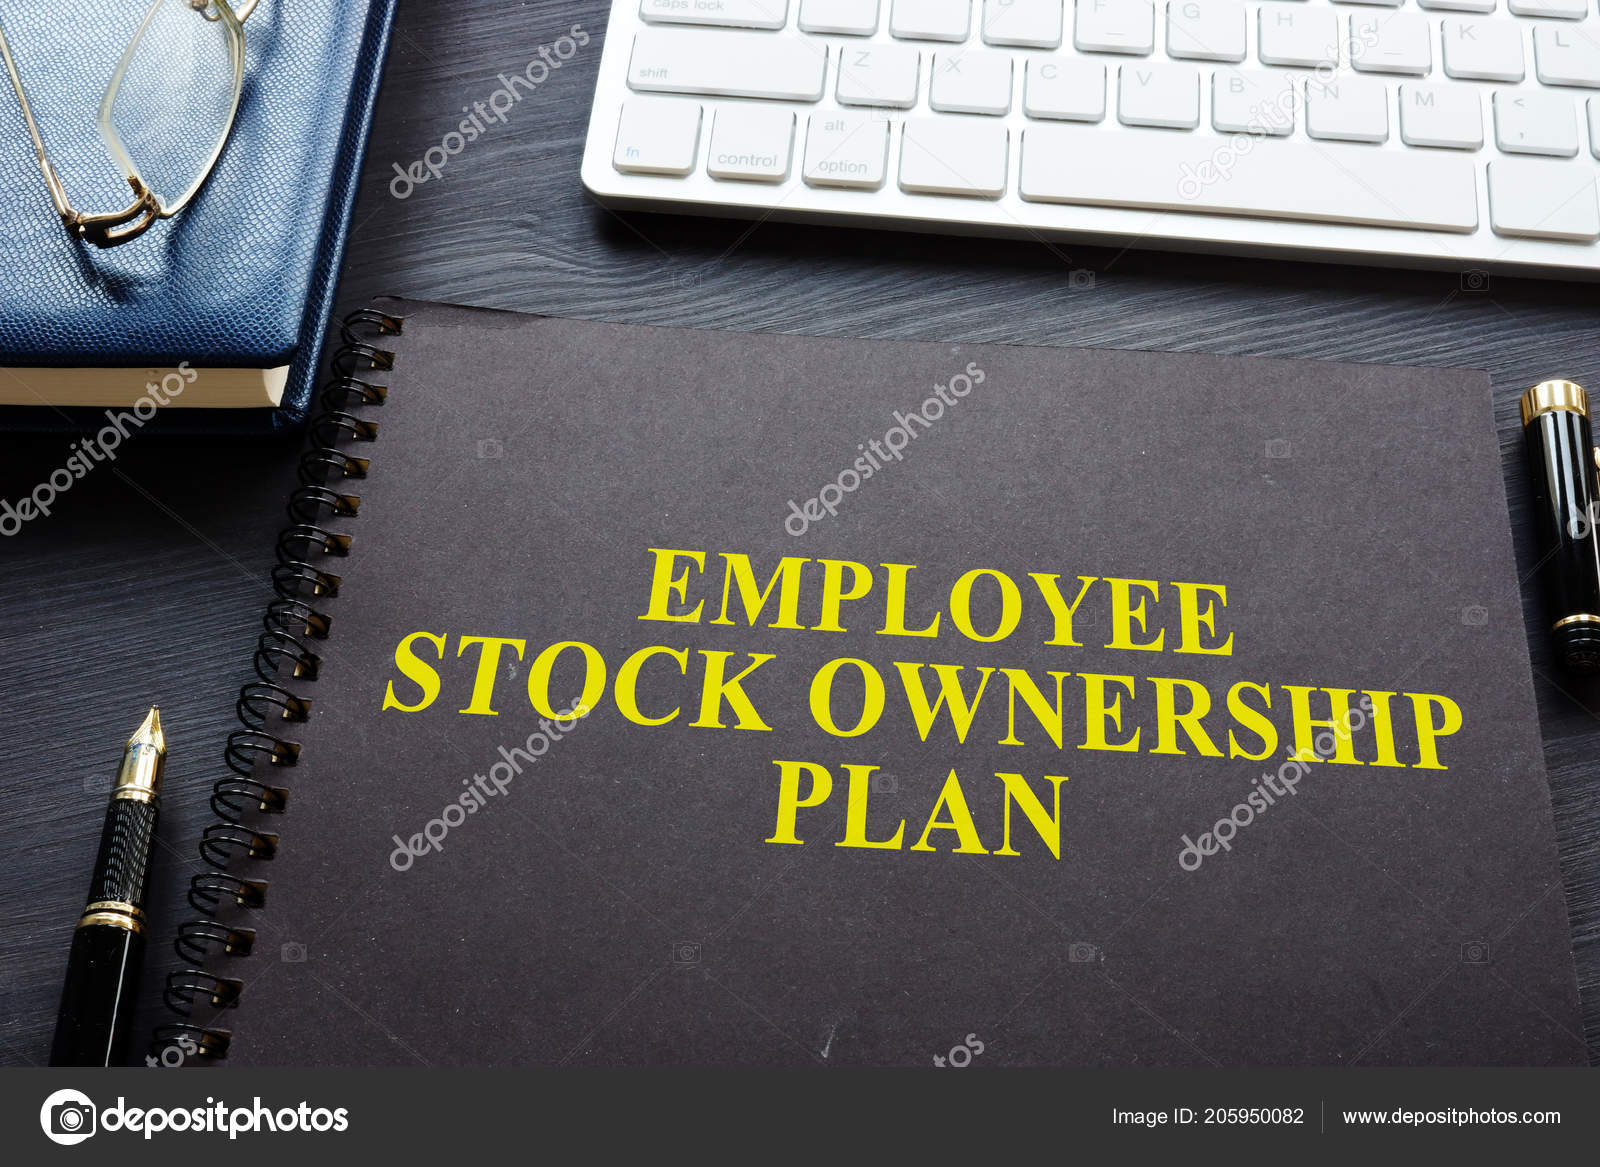 employee stock ownership plans huwai An employee stock ownership plan (esop) is an employee-owner program that provides a company's workforce with an ownership interest in the company in an esop, companies provide their employees with stock ownership, often at no upfront cost to the employees.